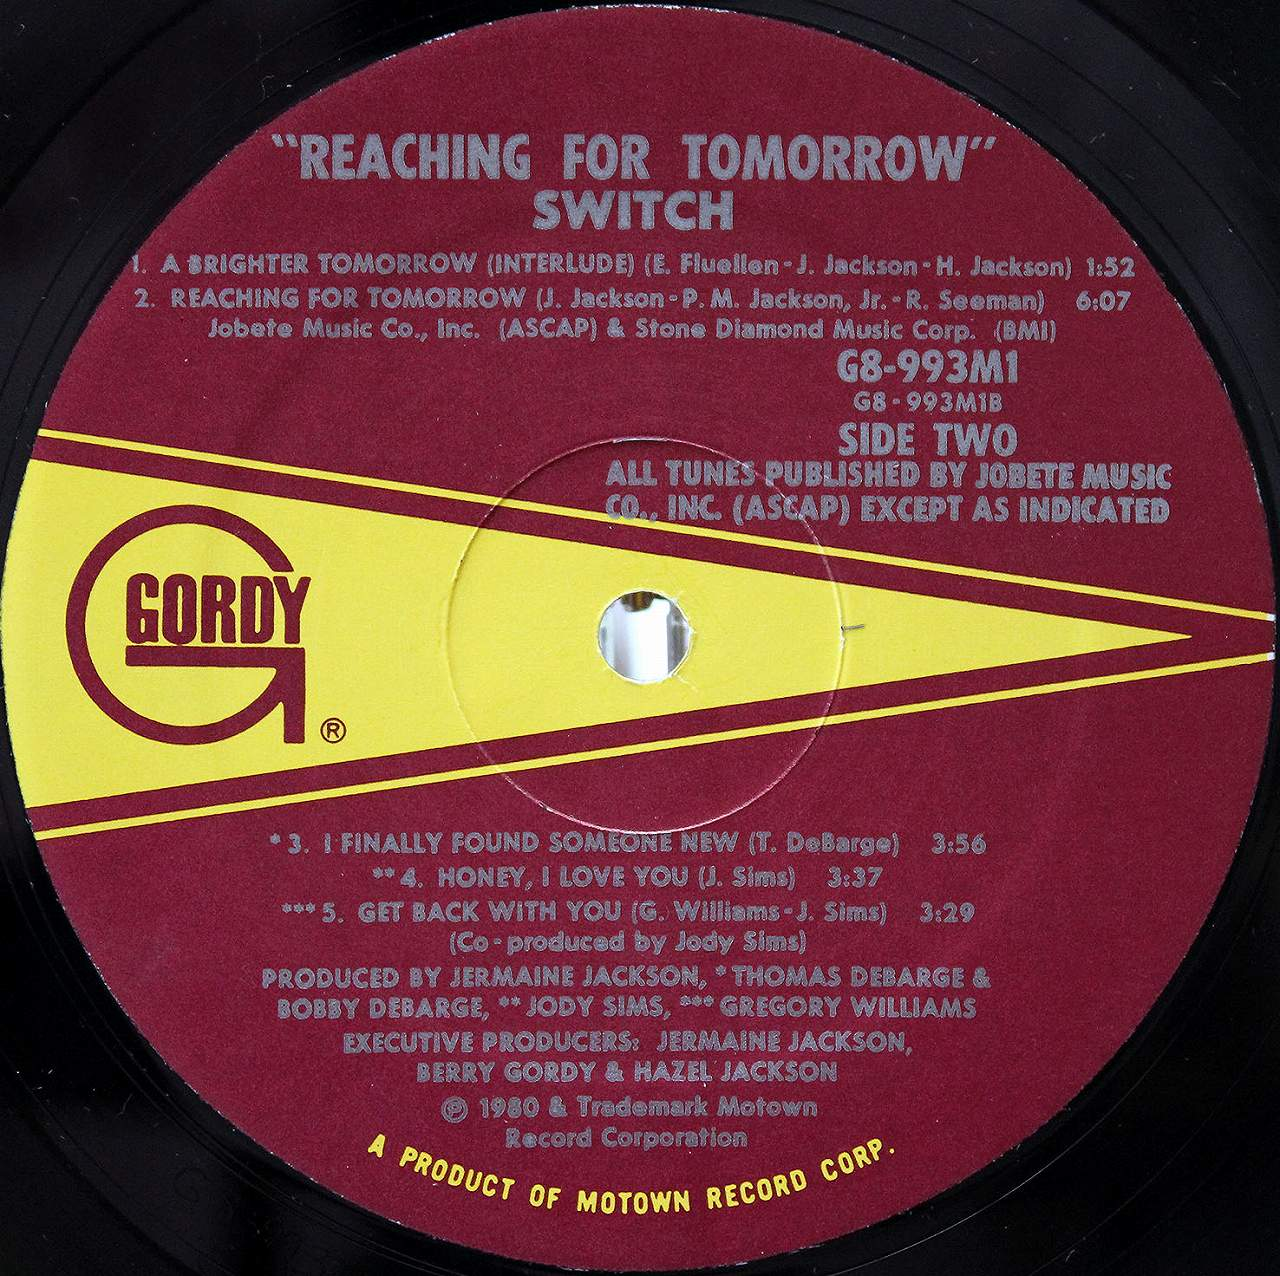 SWITCH REACHING FOR TOMORROW 04